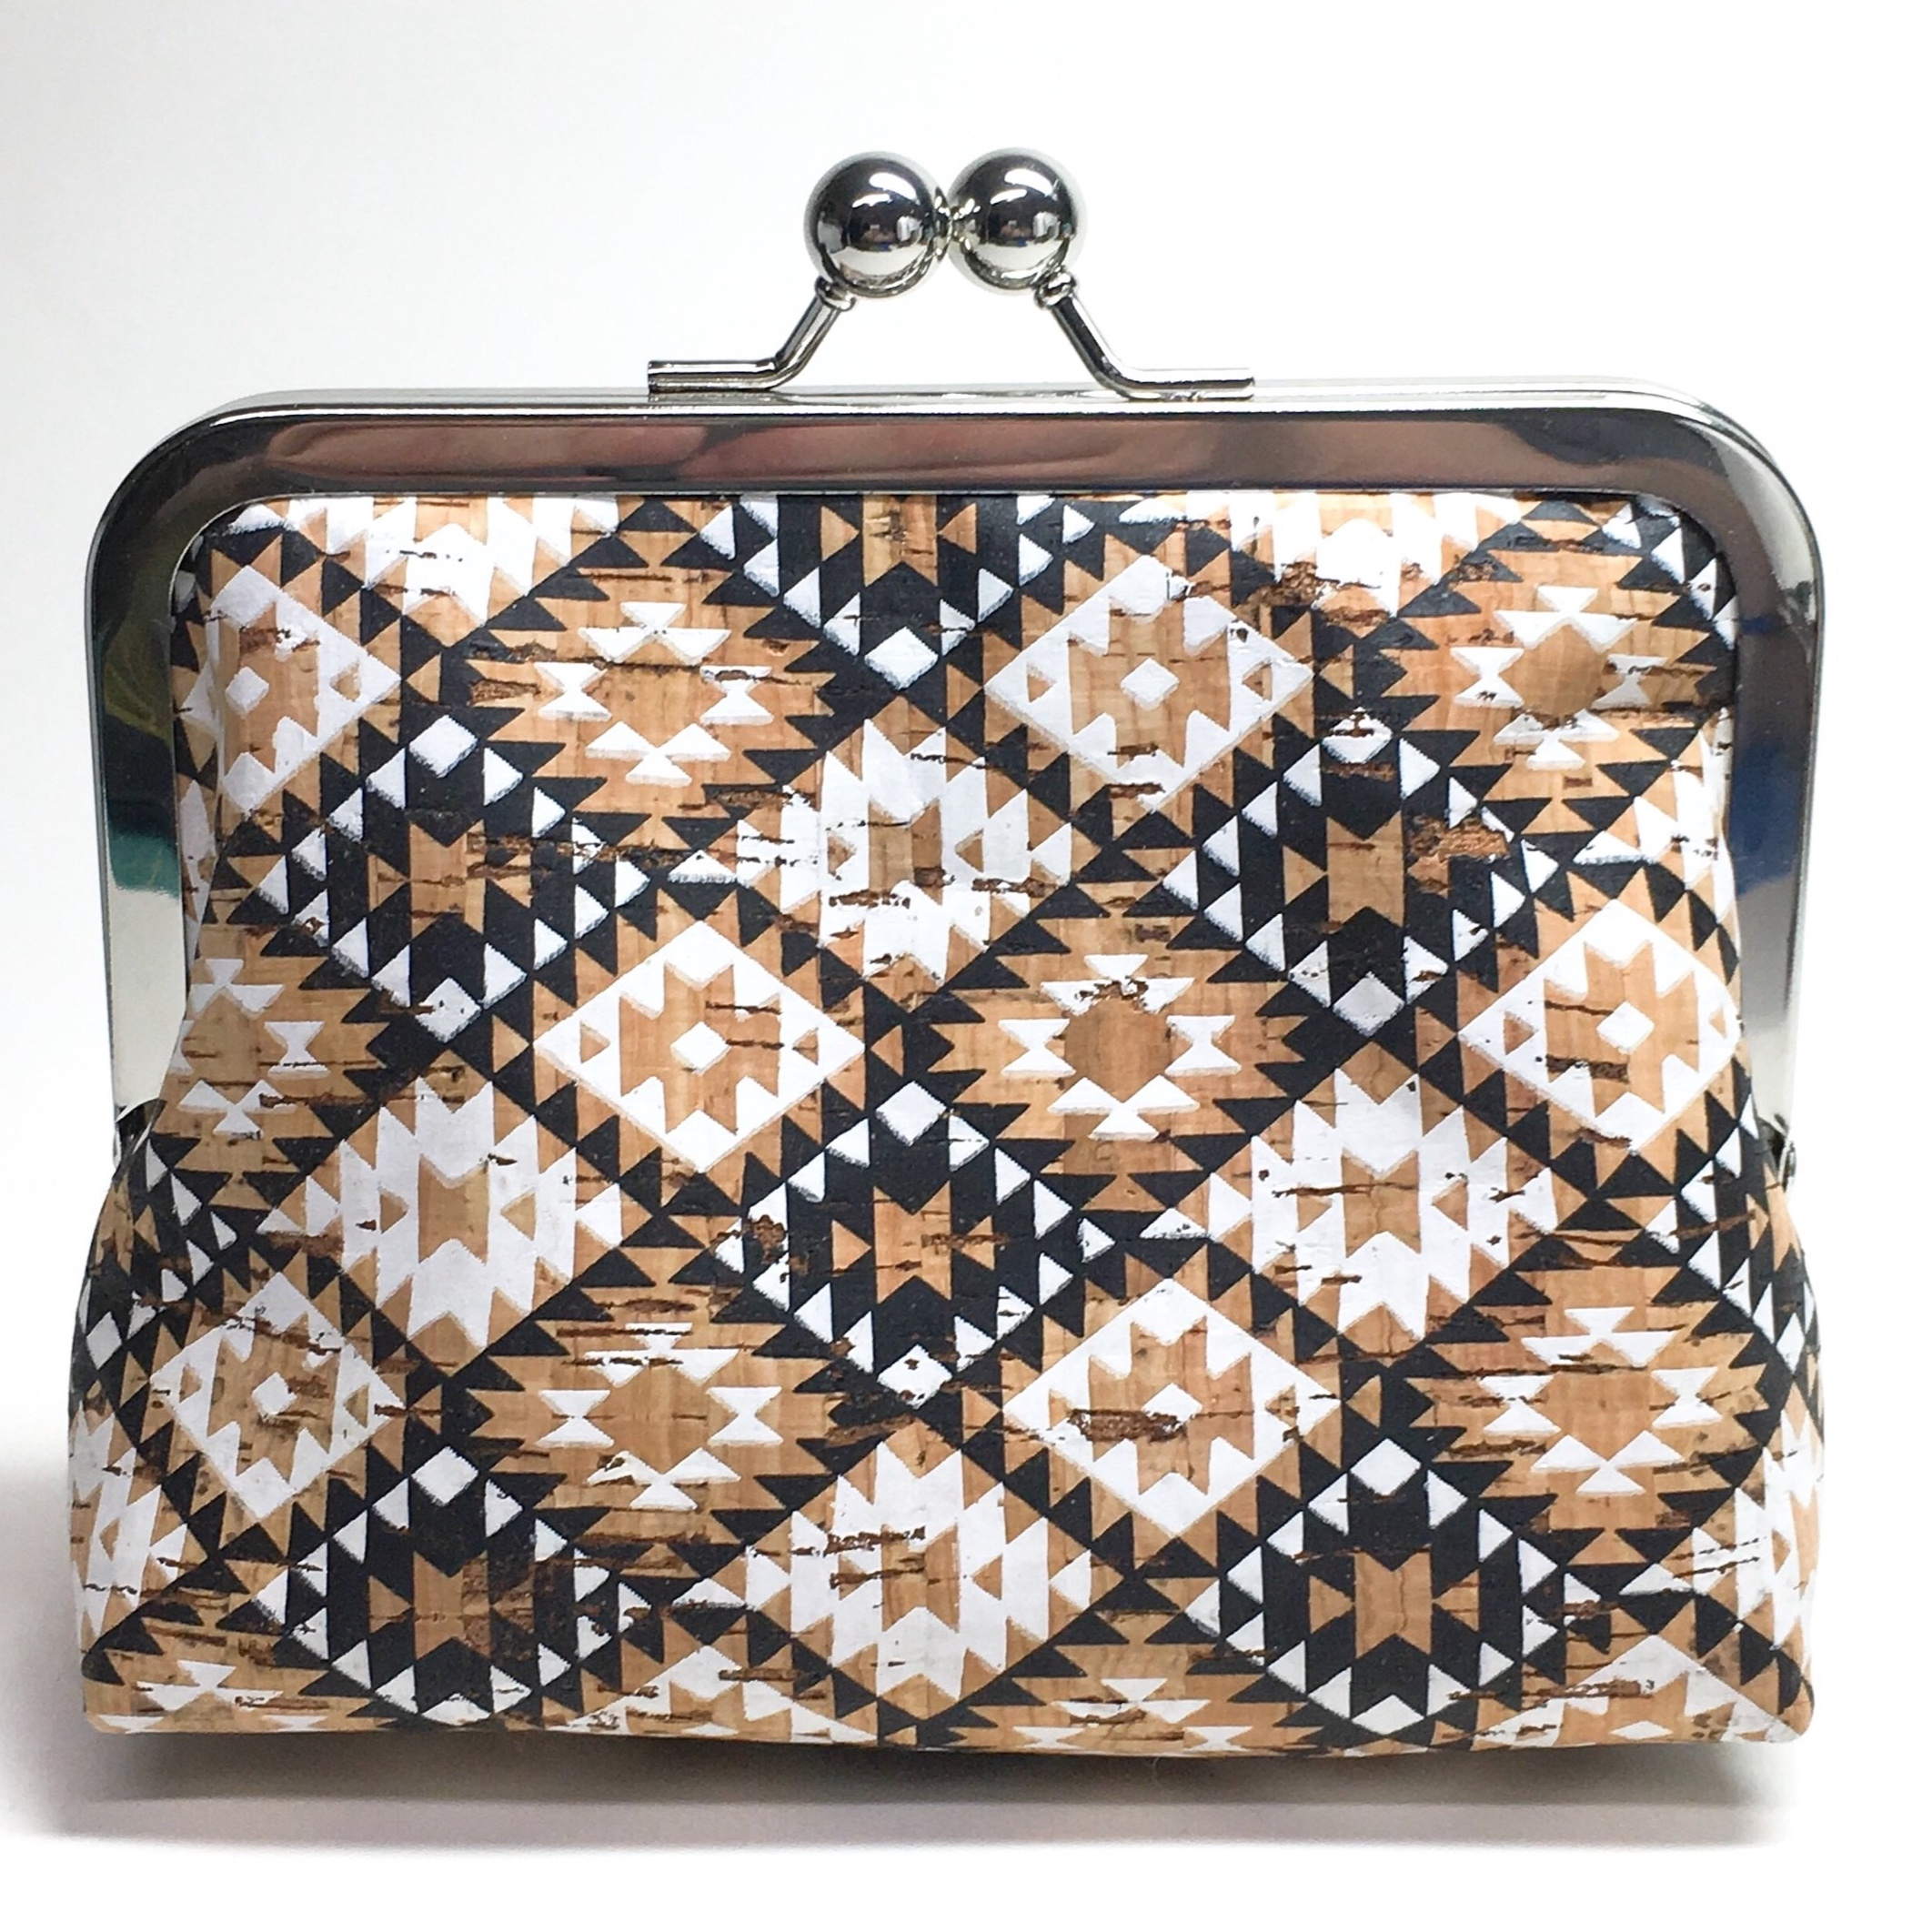 kisslock medium clutch. available with or without chain strap (two length options)